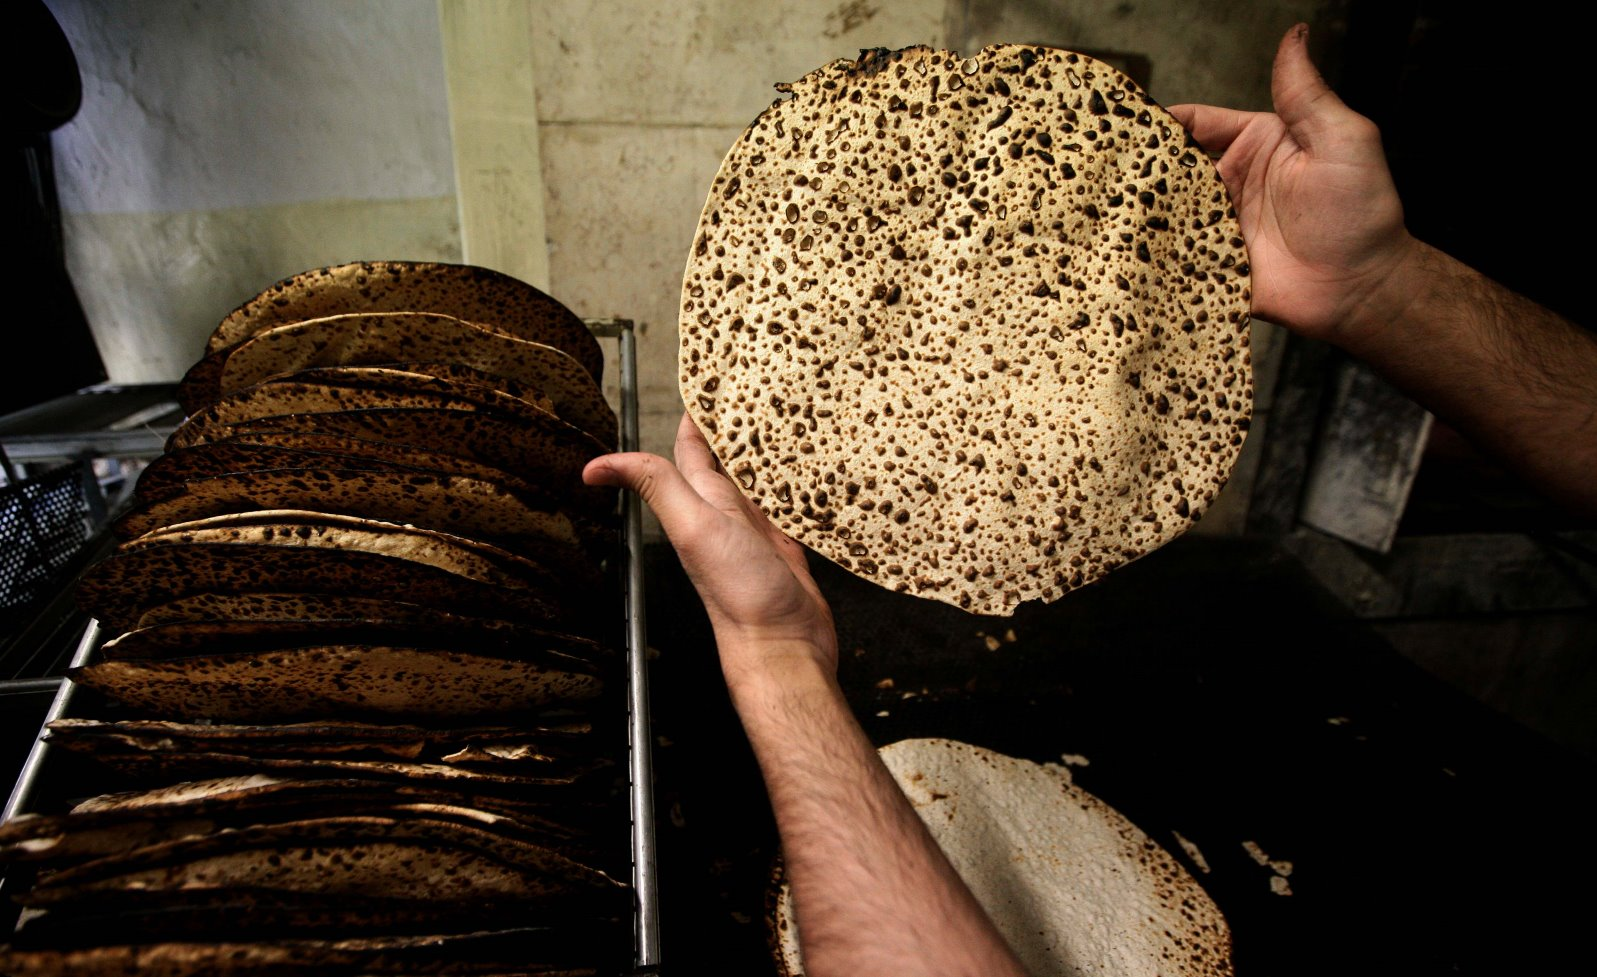 Handmade shmura matzah in Jerusalem. Photo by Abir Sultan/FLASH90